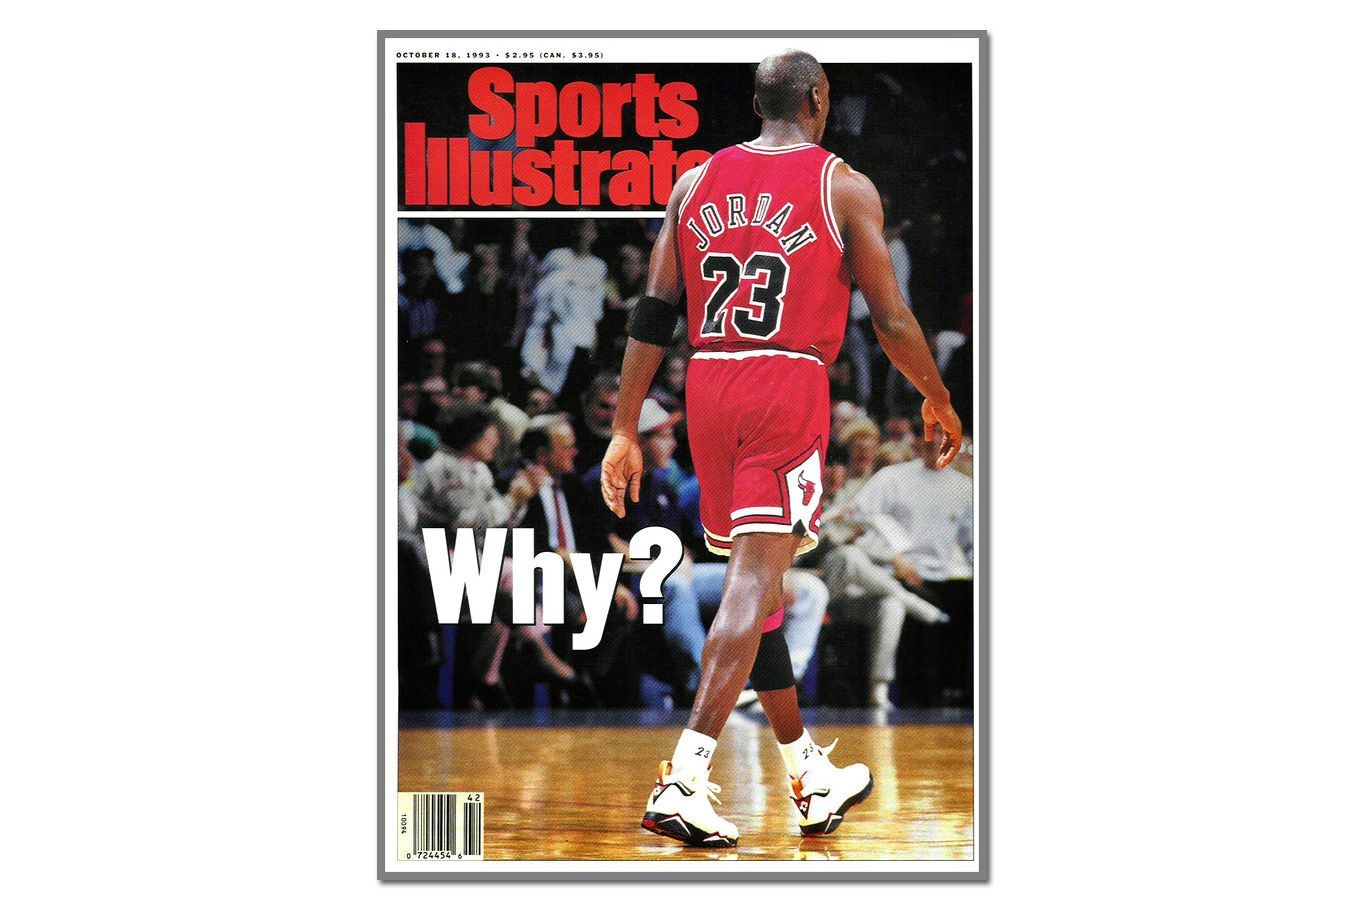 8f3eae8ecc0 #HSTBT | The Conspiracy Around Michael Jordan's First Retirement |  Highsnobiety